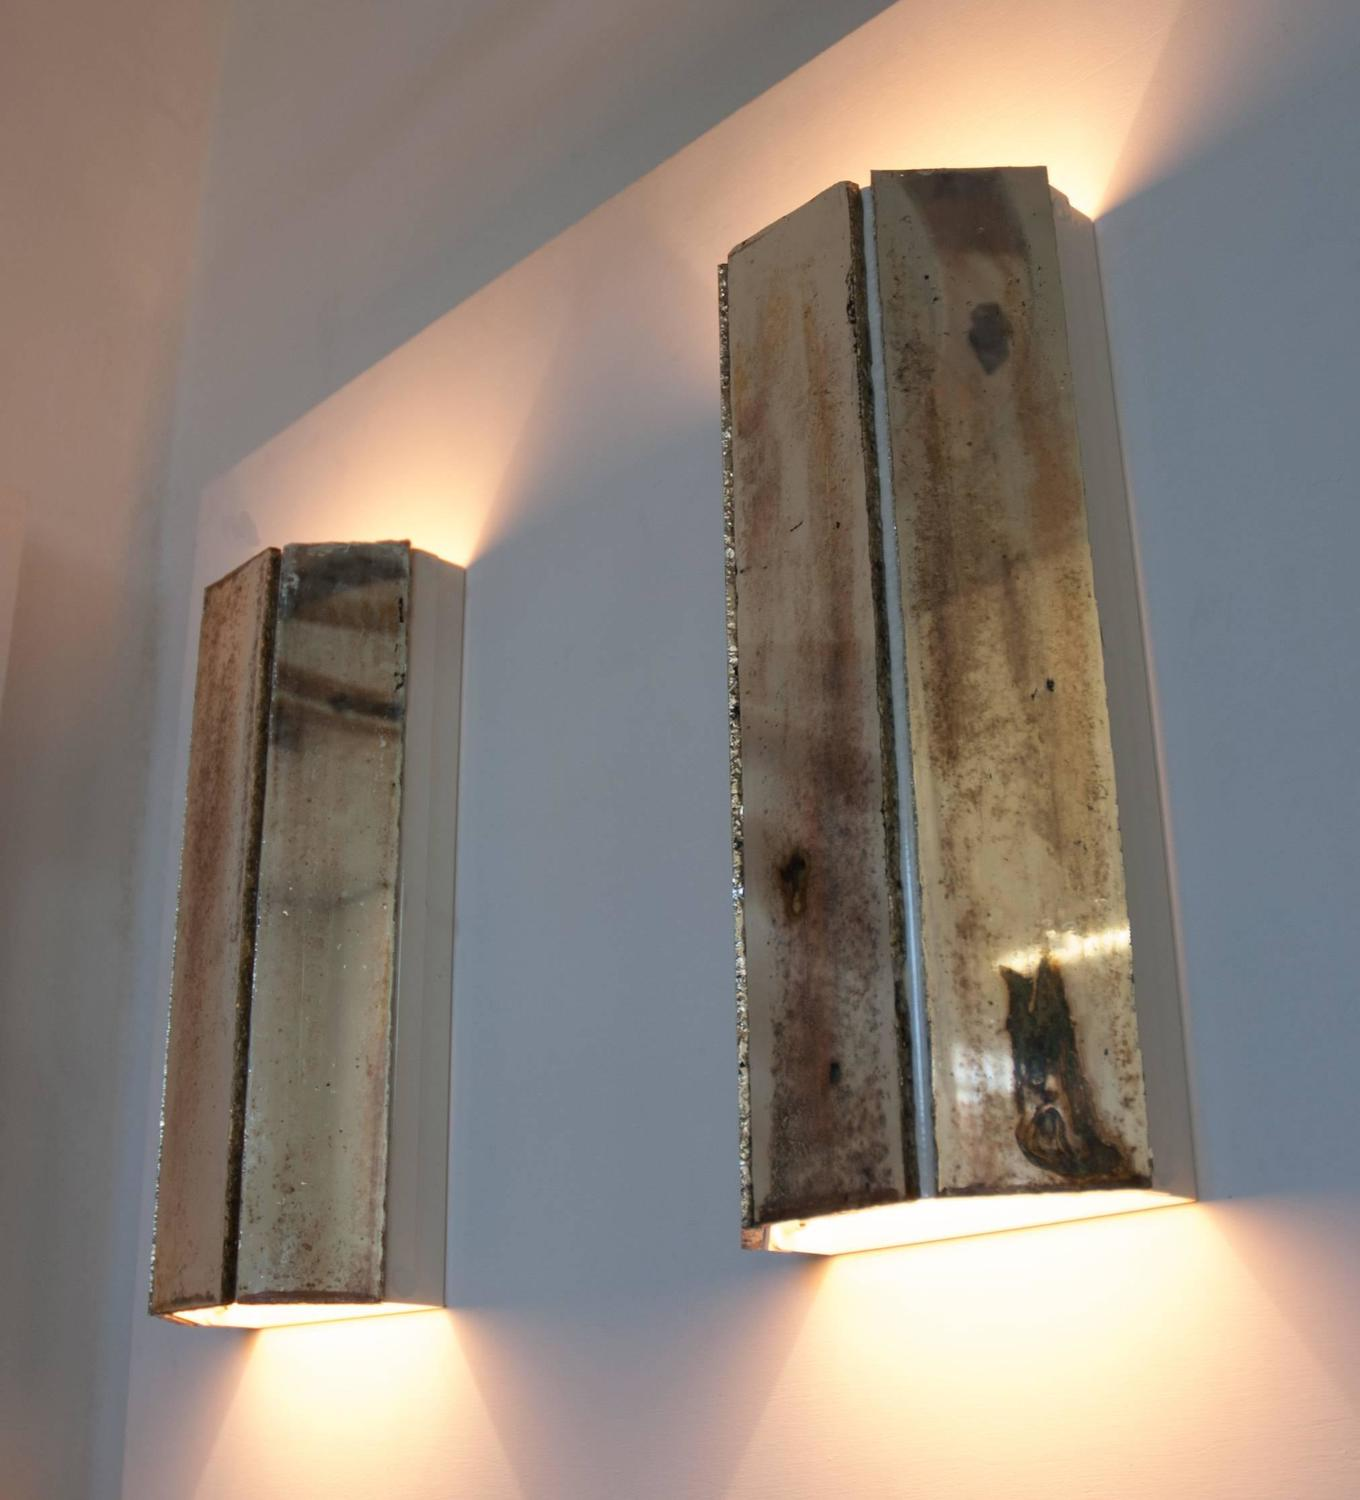 Wall Sconces Next To Mirror : Trilogy jewel pair of wall lamp sconces silvered glass living room next mirror For Sale at 1stdibs